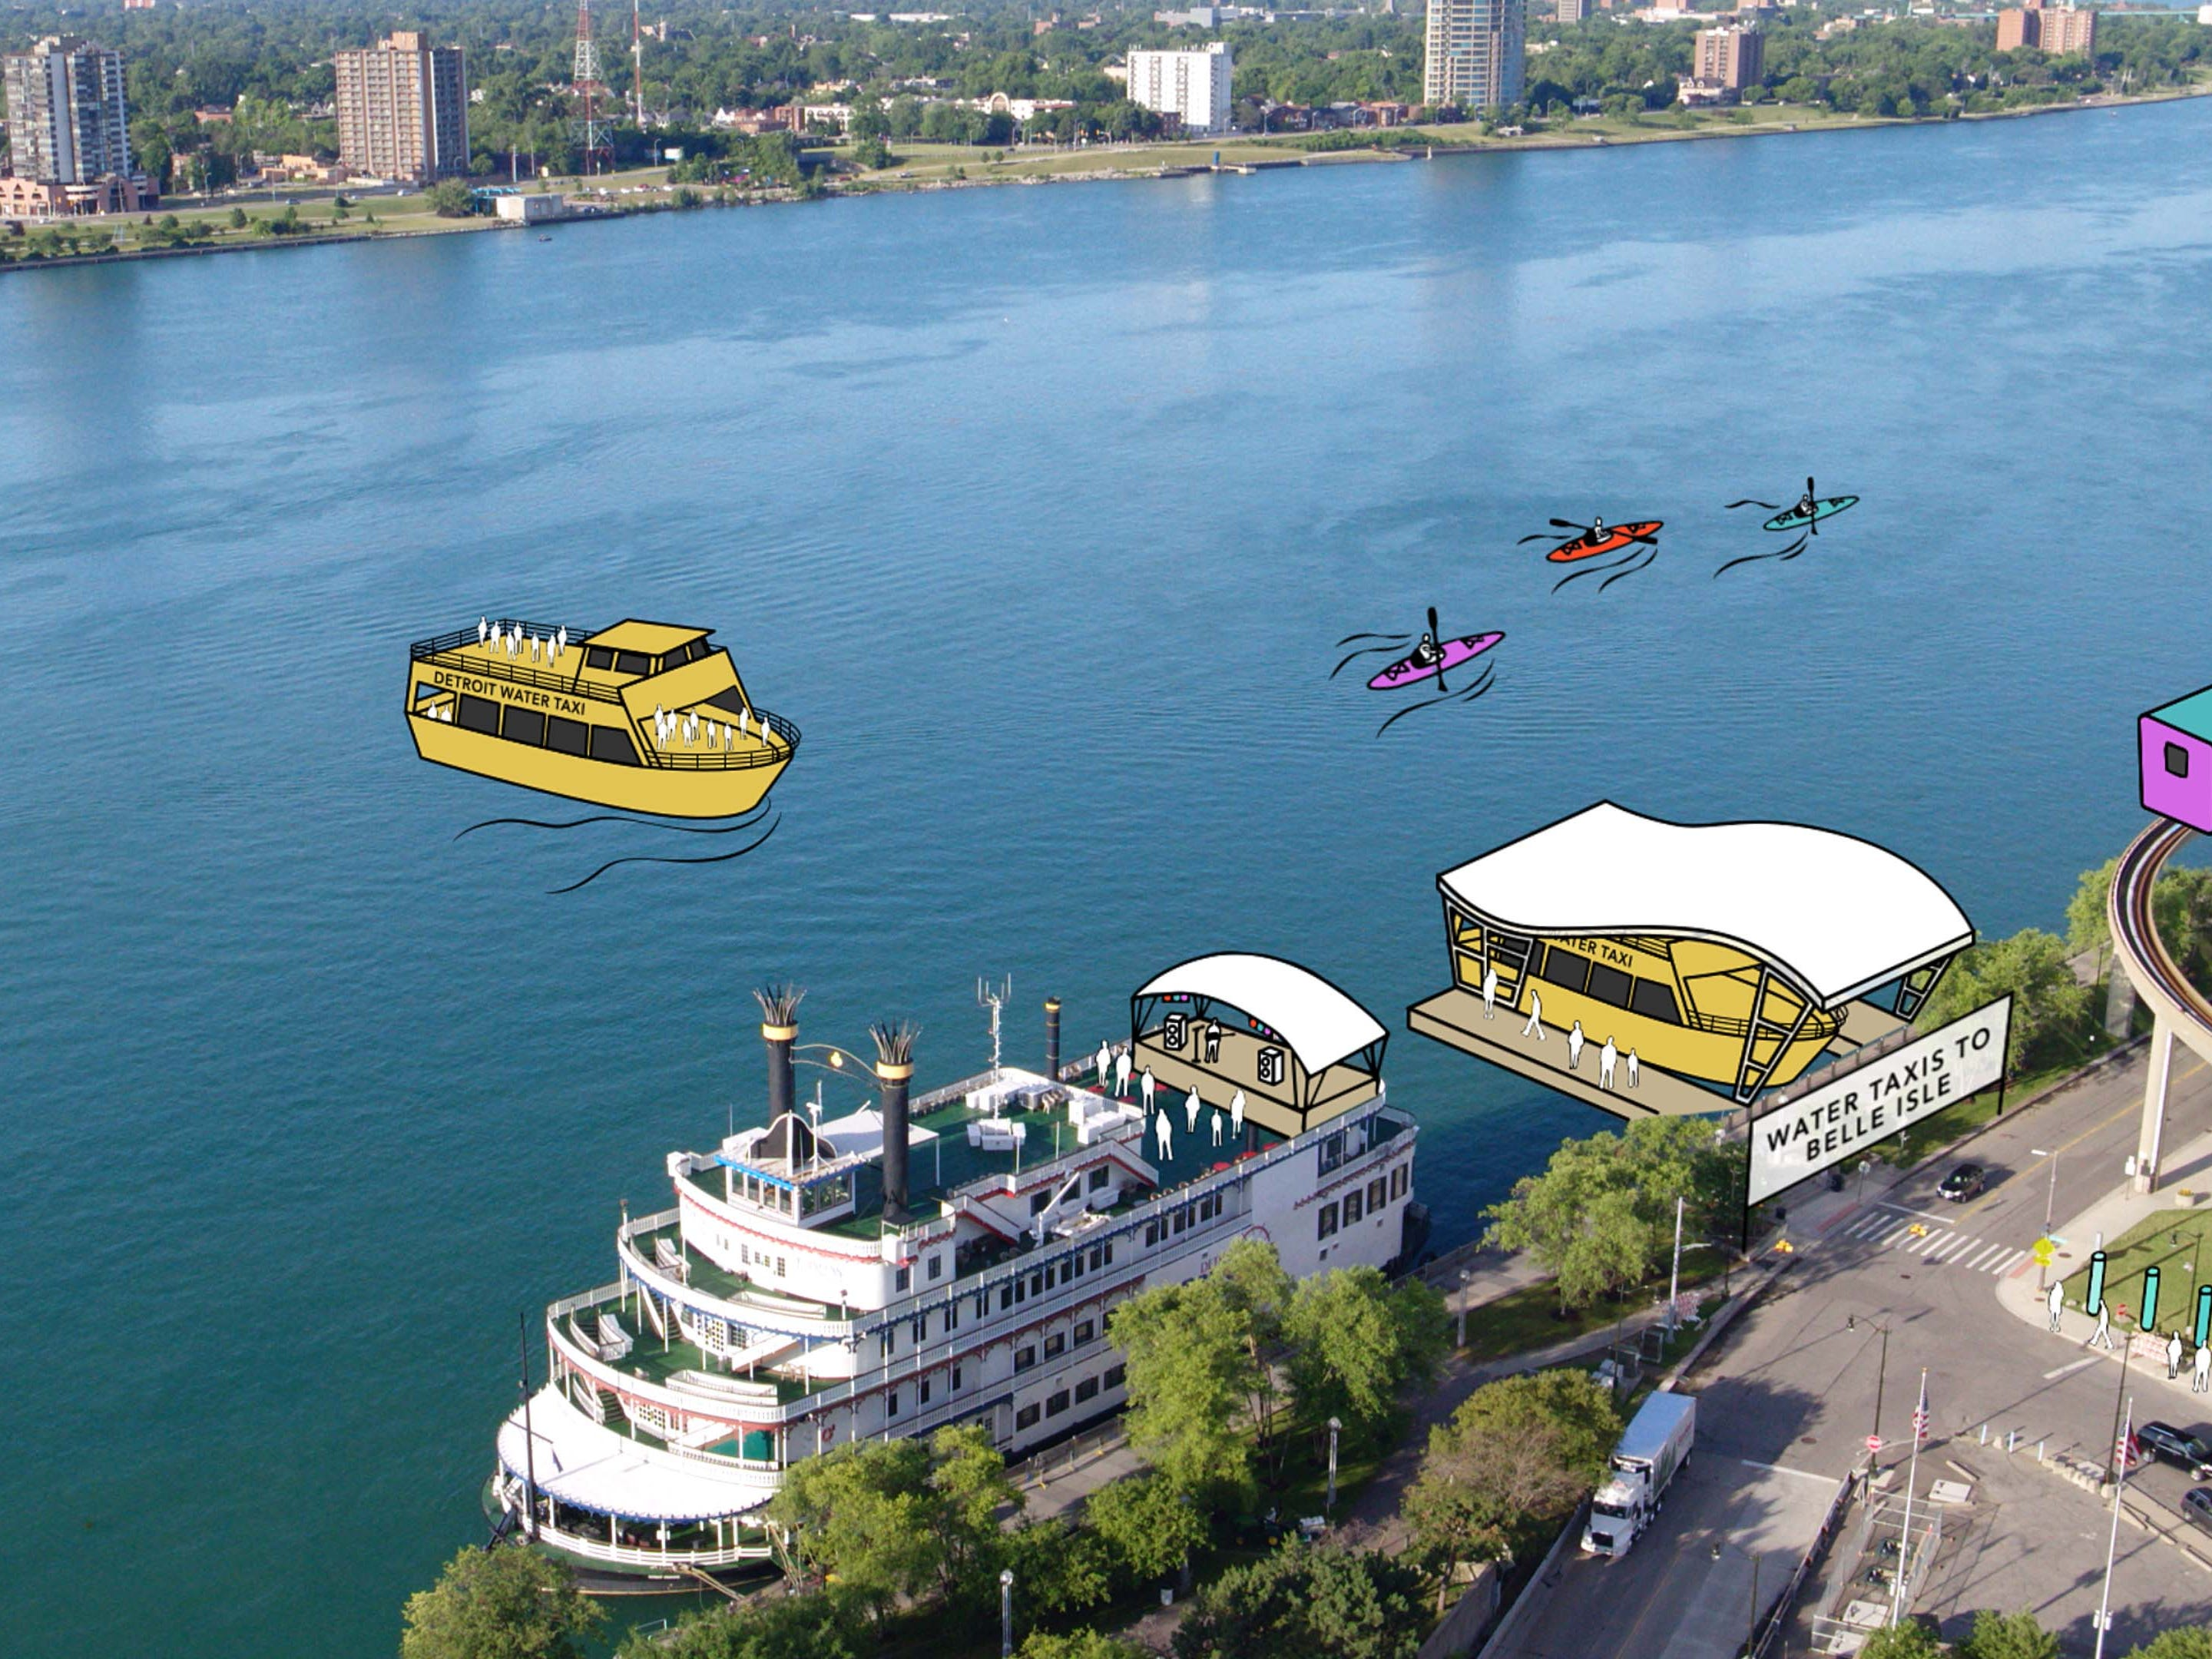 June is for water. An artist's rendition of how the 2020 Detroit Auto Show will expand to the Detroit waterfront.